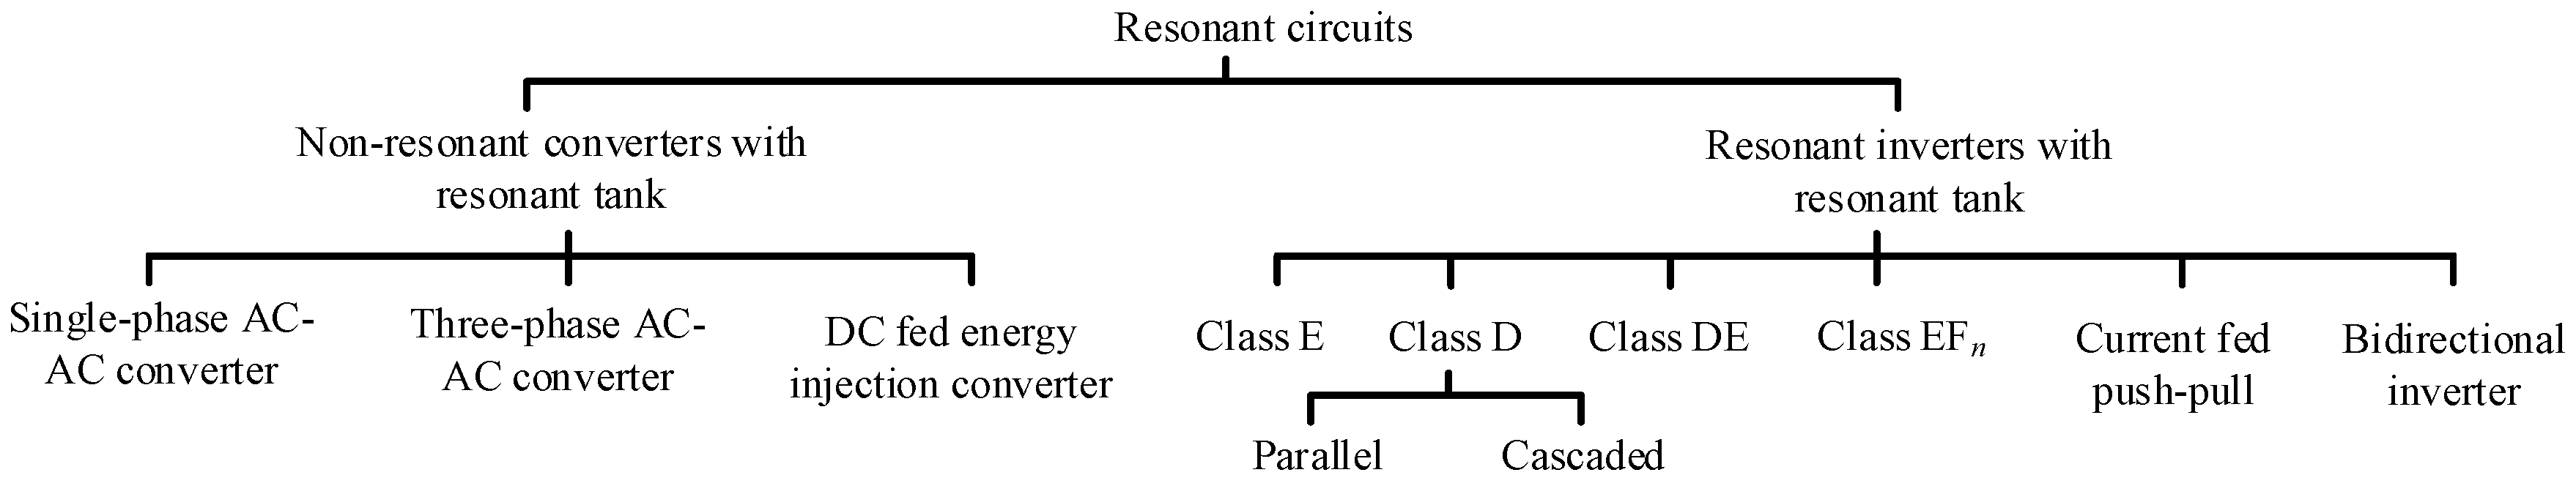 Energies Free Full Text An Overview Of Resonant Circuits For Impedance In A Parallel Resonance Circuit 10 00894 G002 Figure 2 Classification